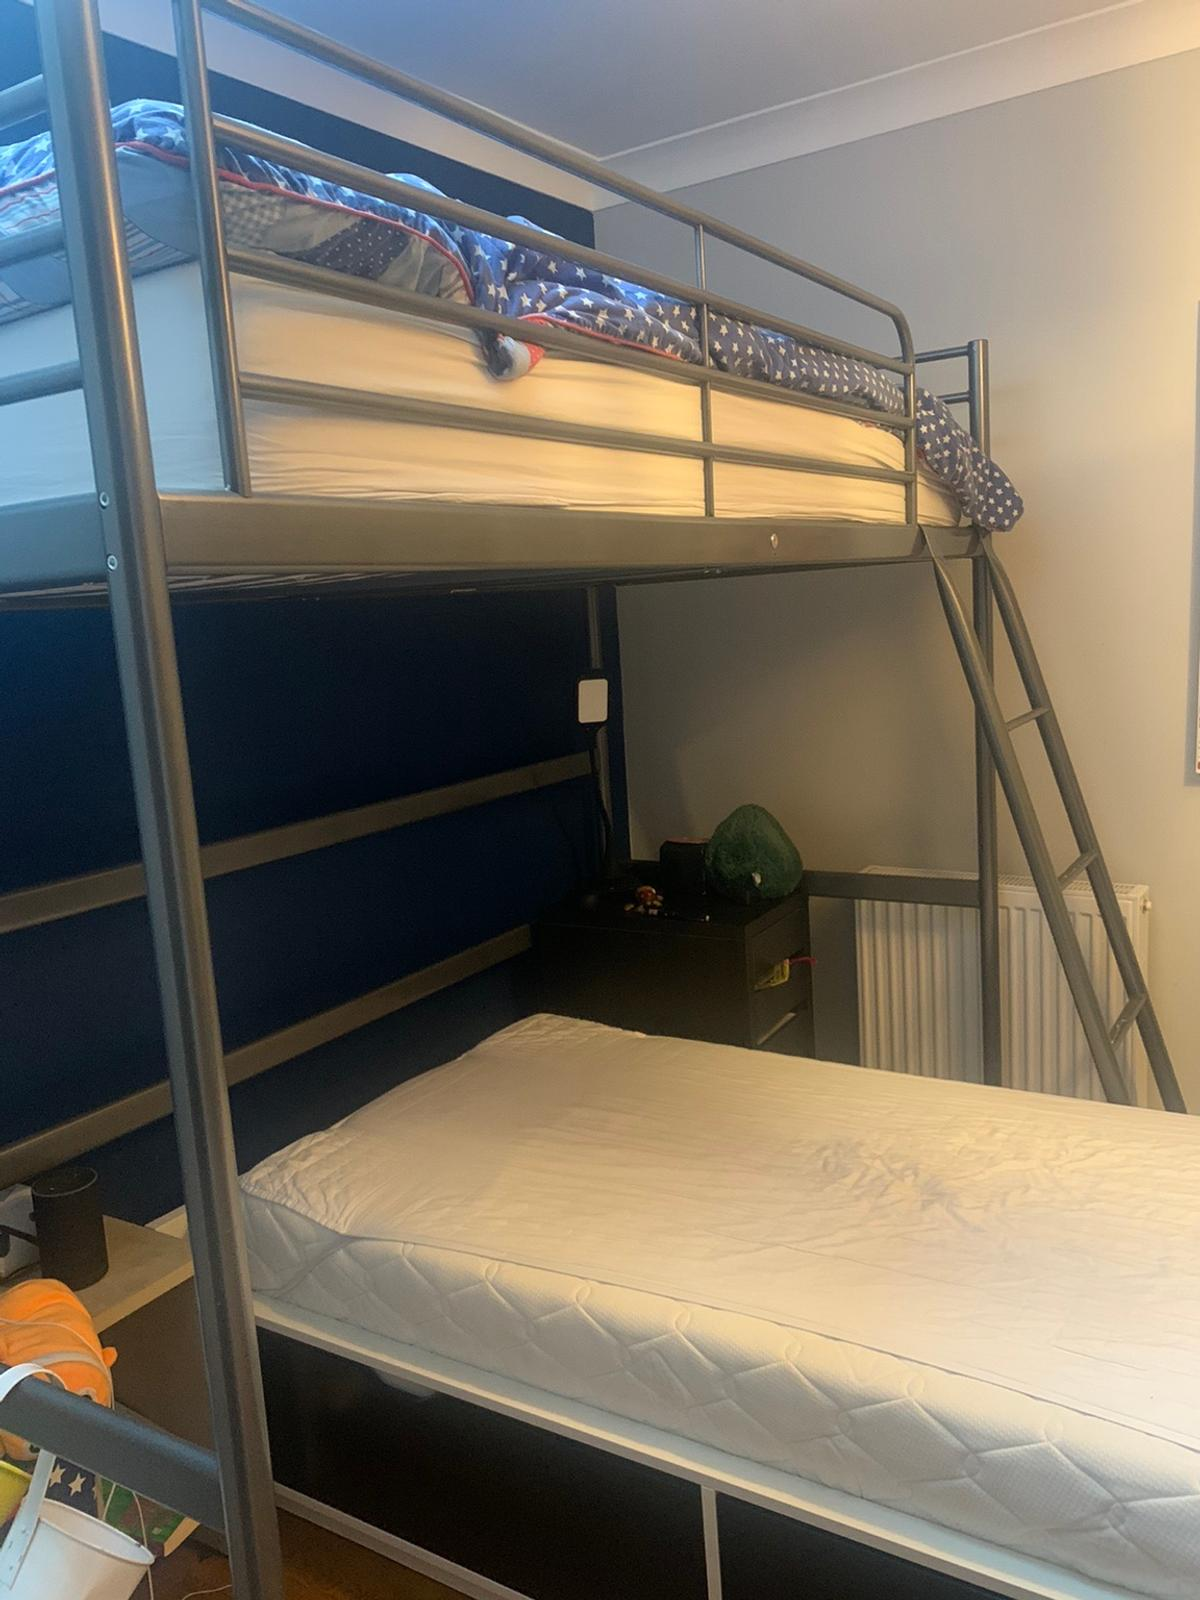 Ikea Metal Frame Bunk Beds With Trestle Bed In Al3 Albans For 100 00 For Sale Shpock